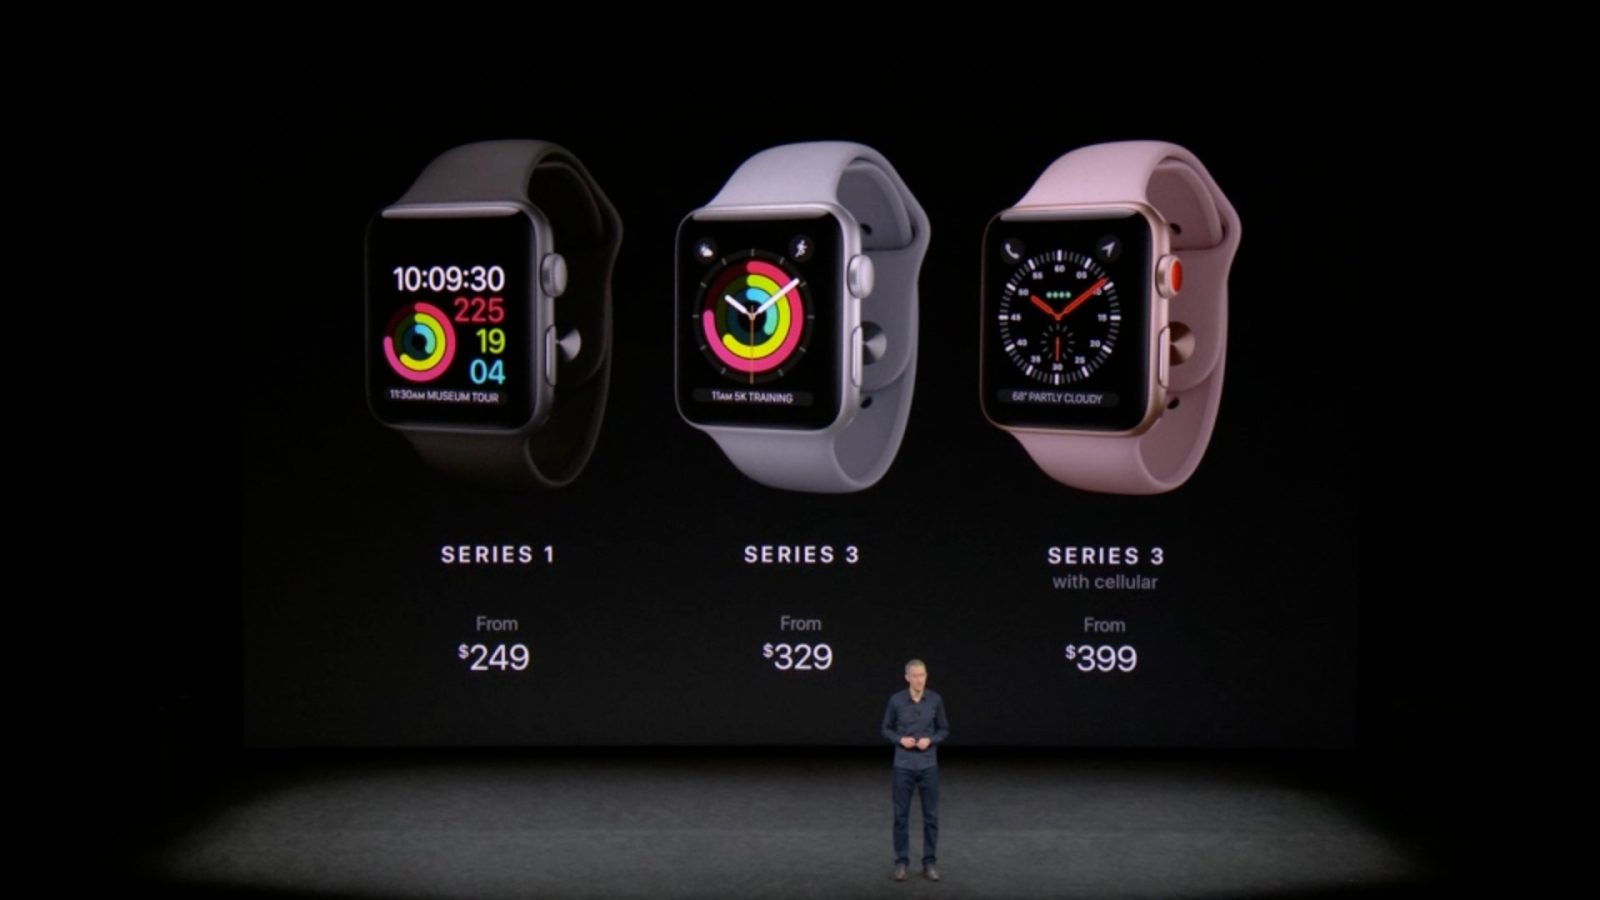 on sale 48ba0 17875 Apple Watch Series 3 starts at $329 for WiFi-only and $399 for LTE ...